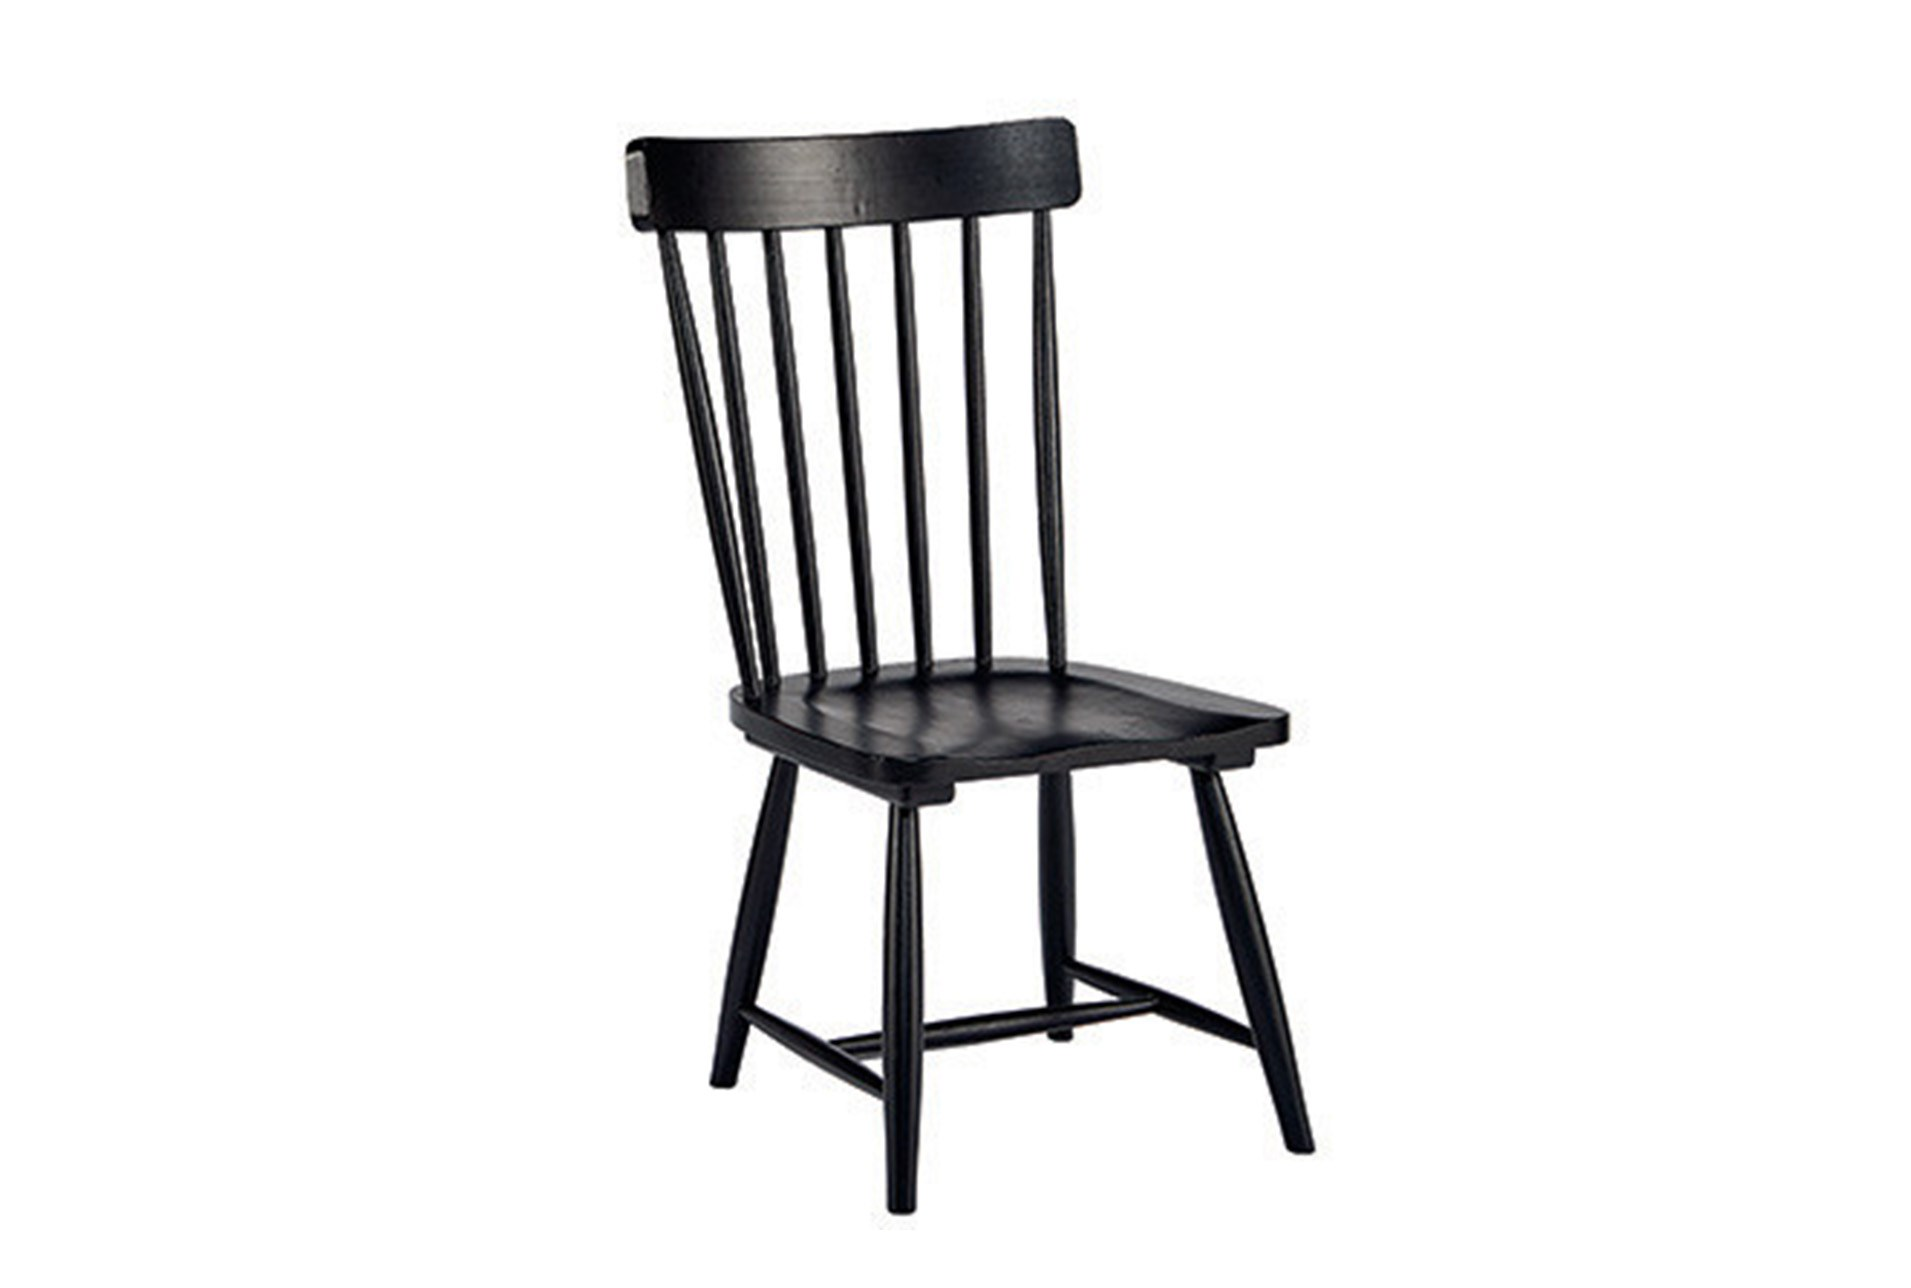 Magnolia Home Spindle Back Side Chair By Joanna Gaines Qty 1 Has Been Successfully Added To Your Cart